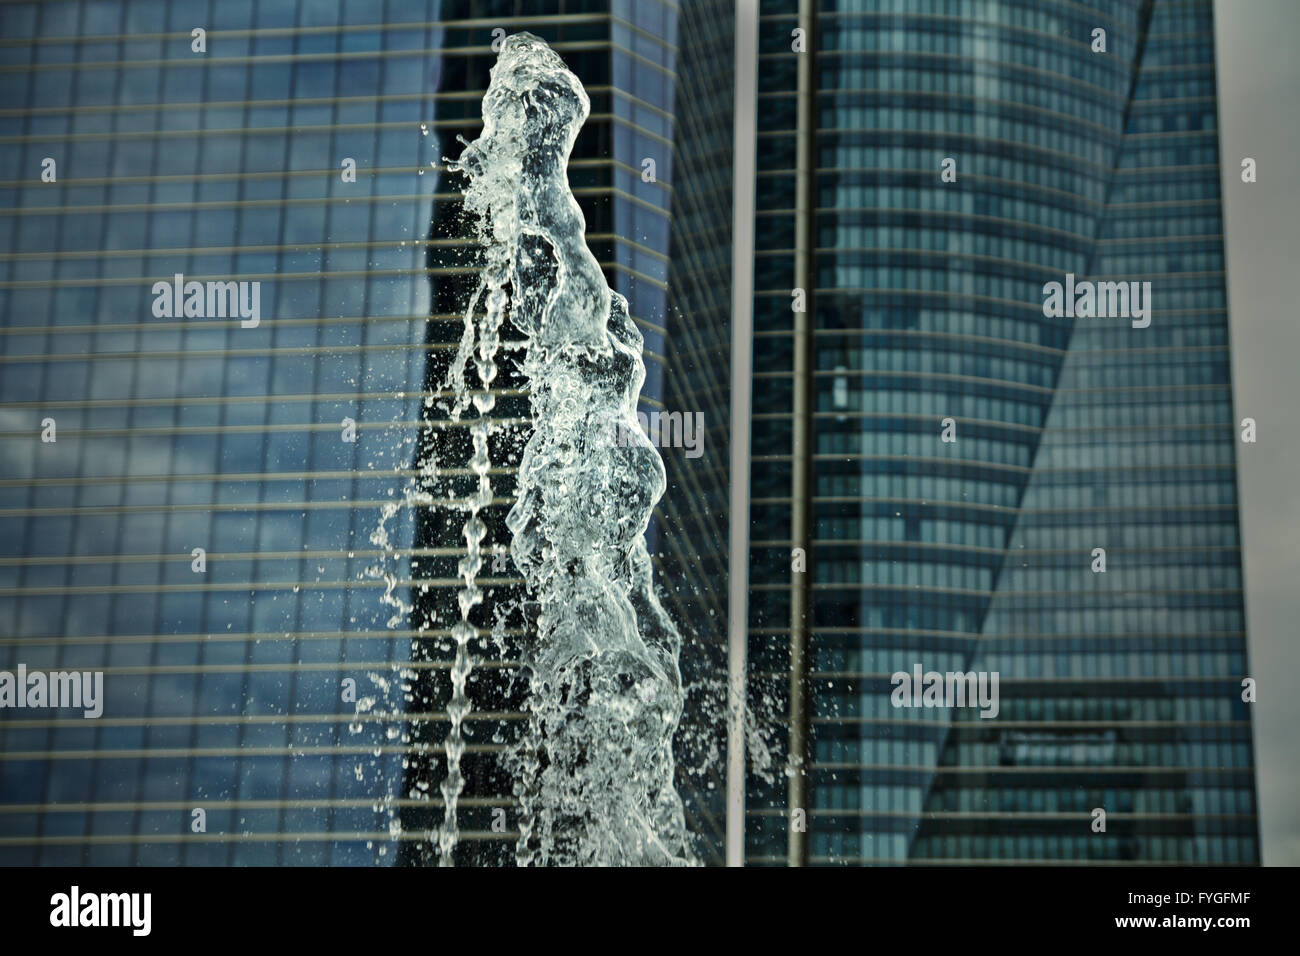 water jets, office building source, towers at background Stock Photo